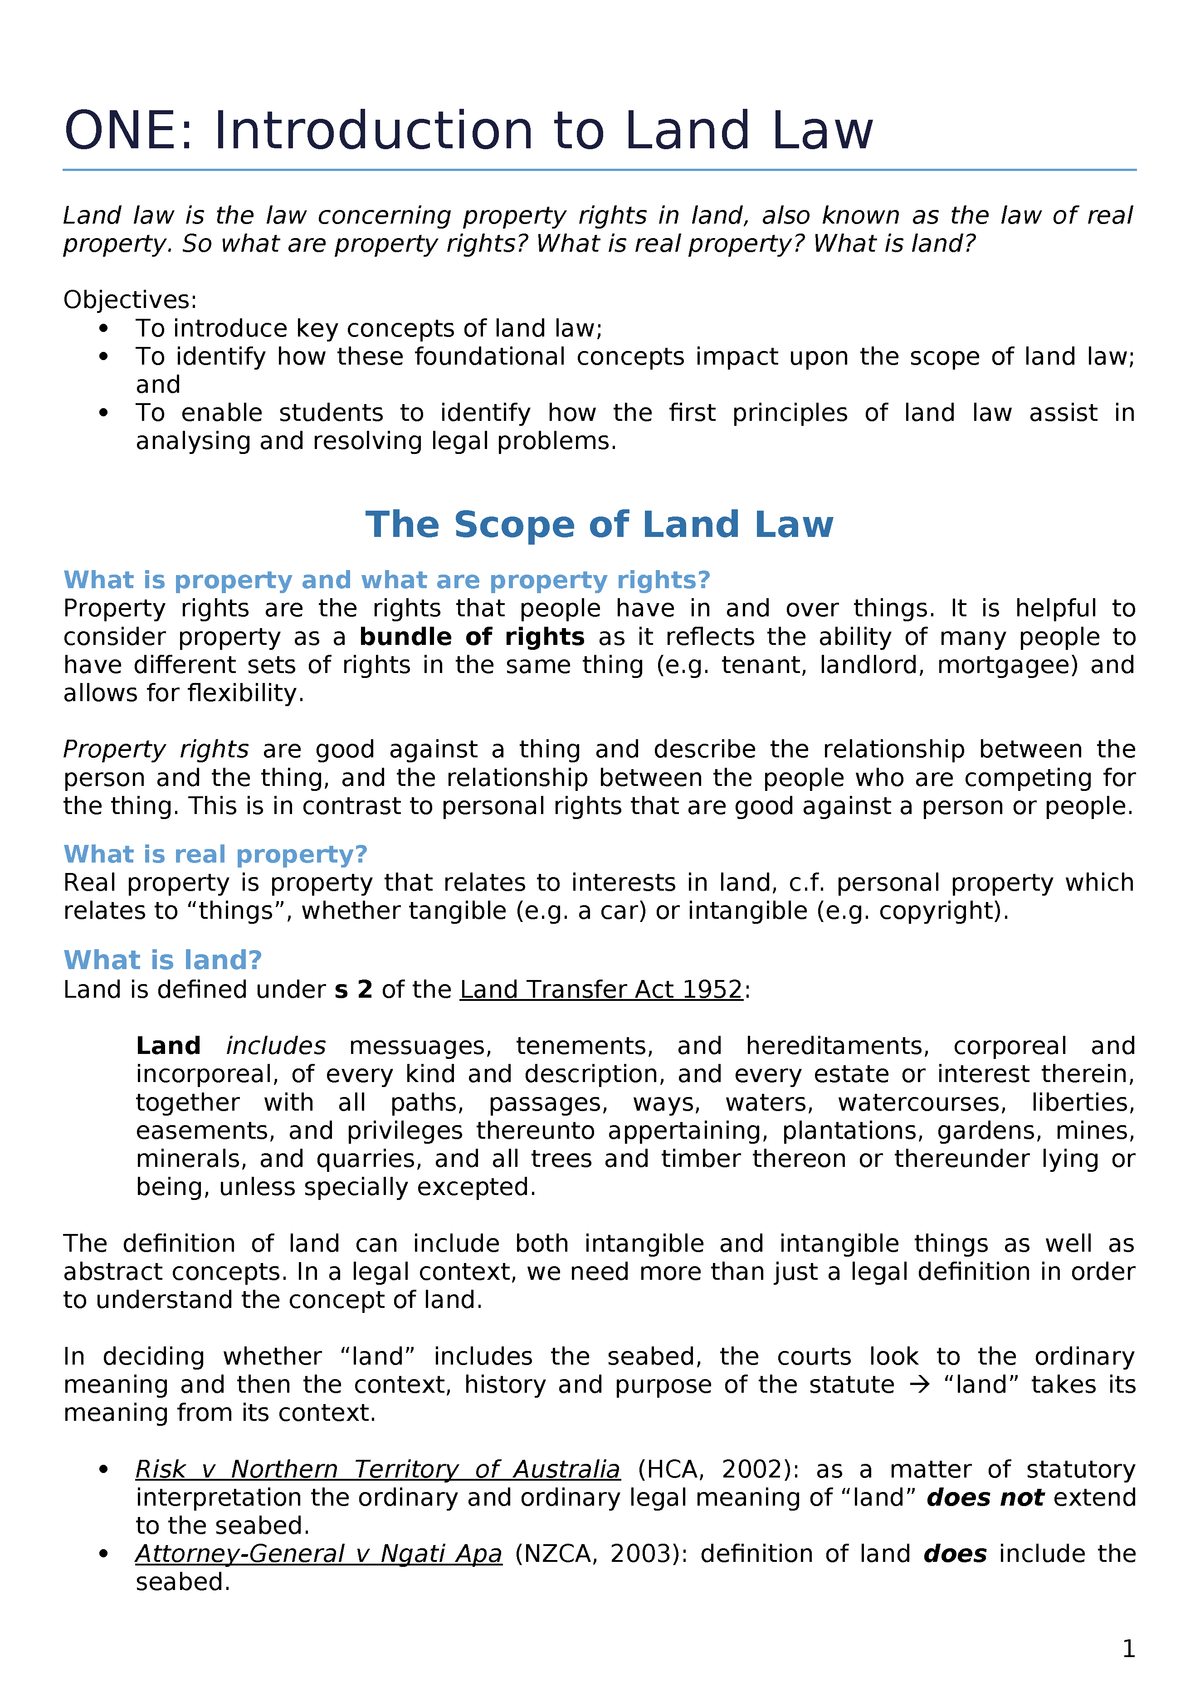 1 - brief introduction to NZ Land Law - Land Law LEGAL307